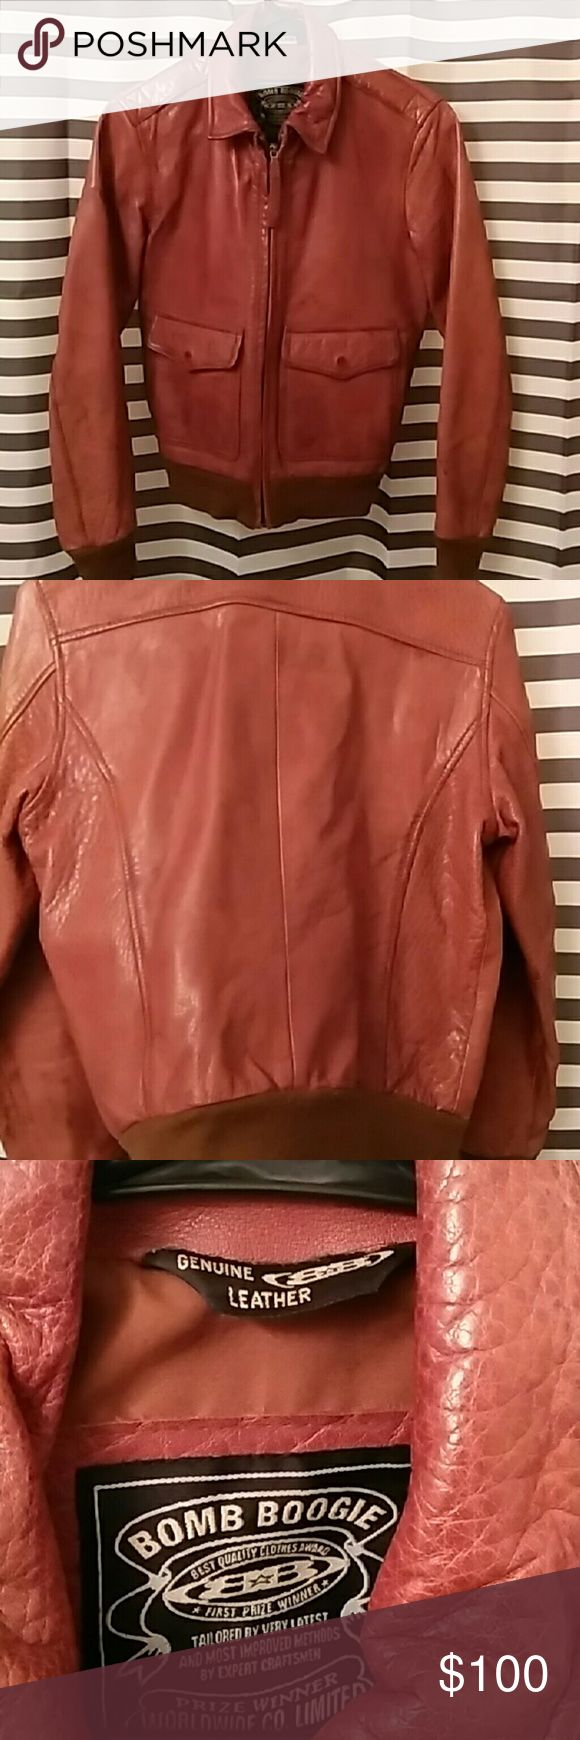 Brown leather bomber jacket See pics Jackets & Coats